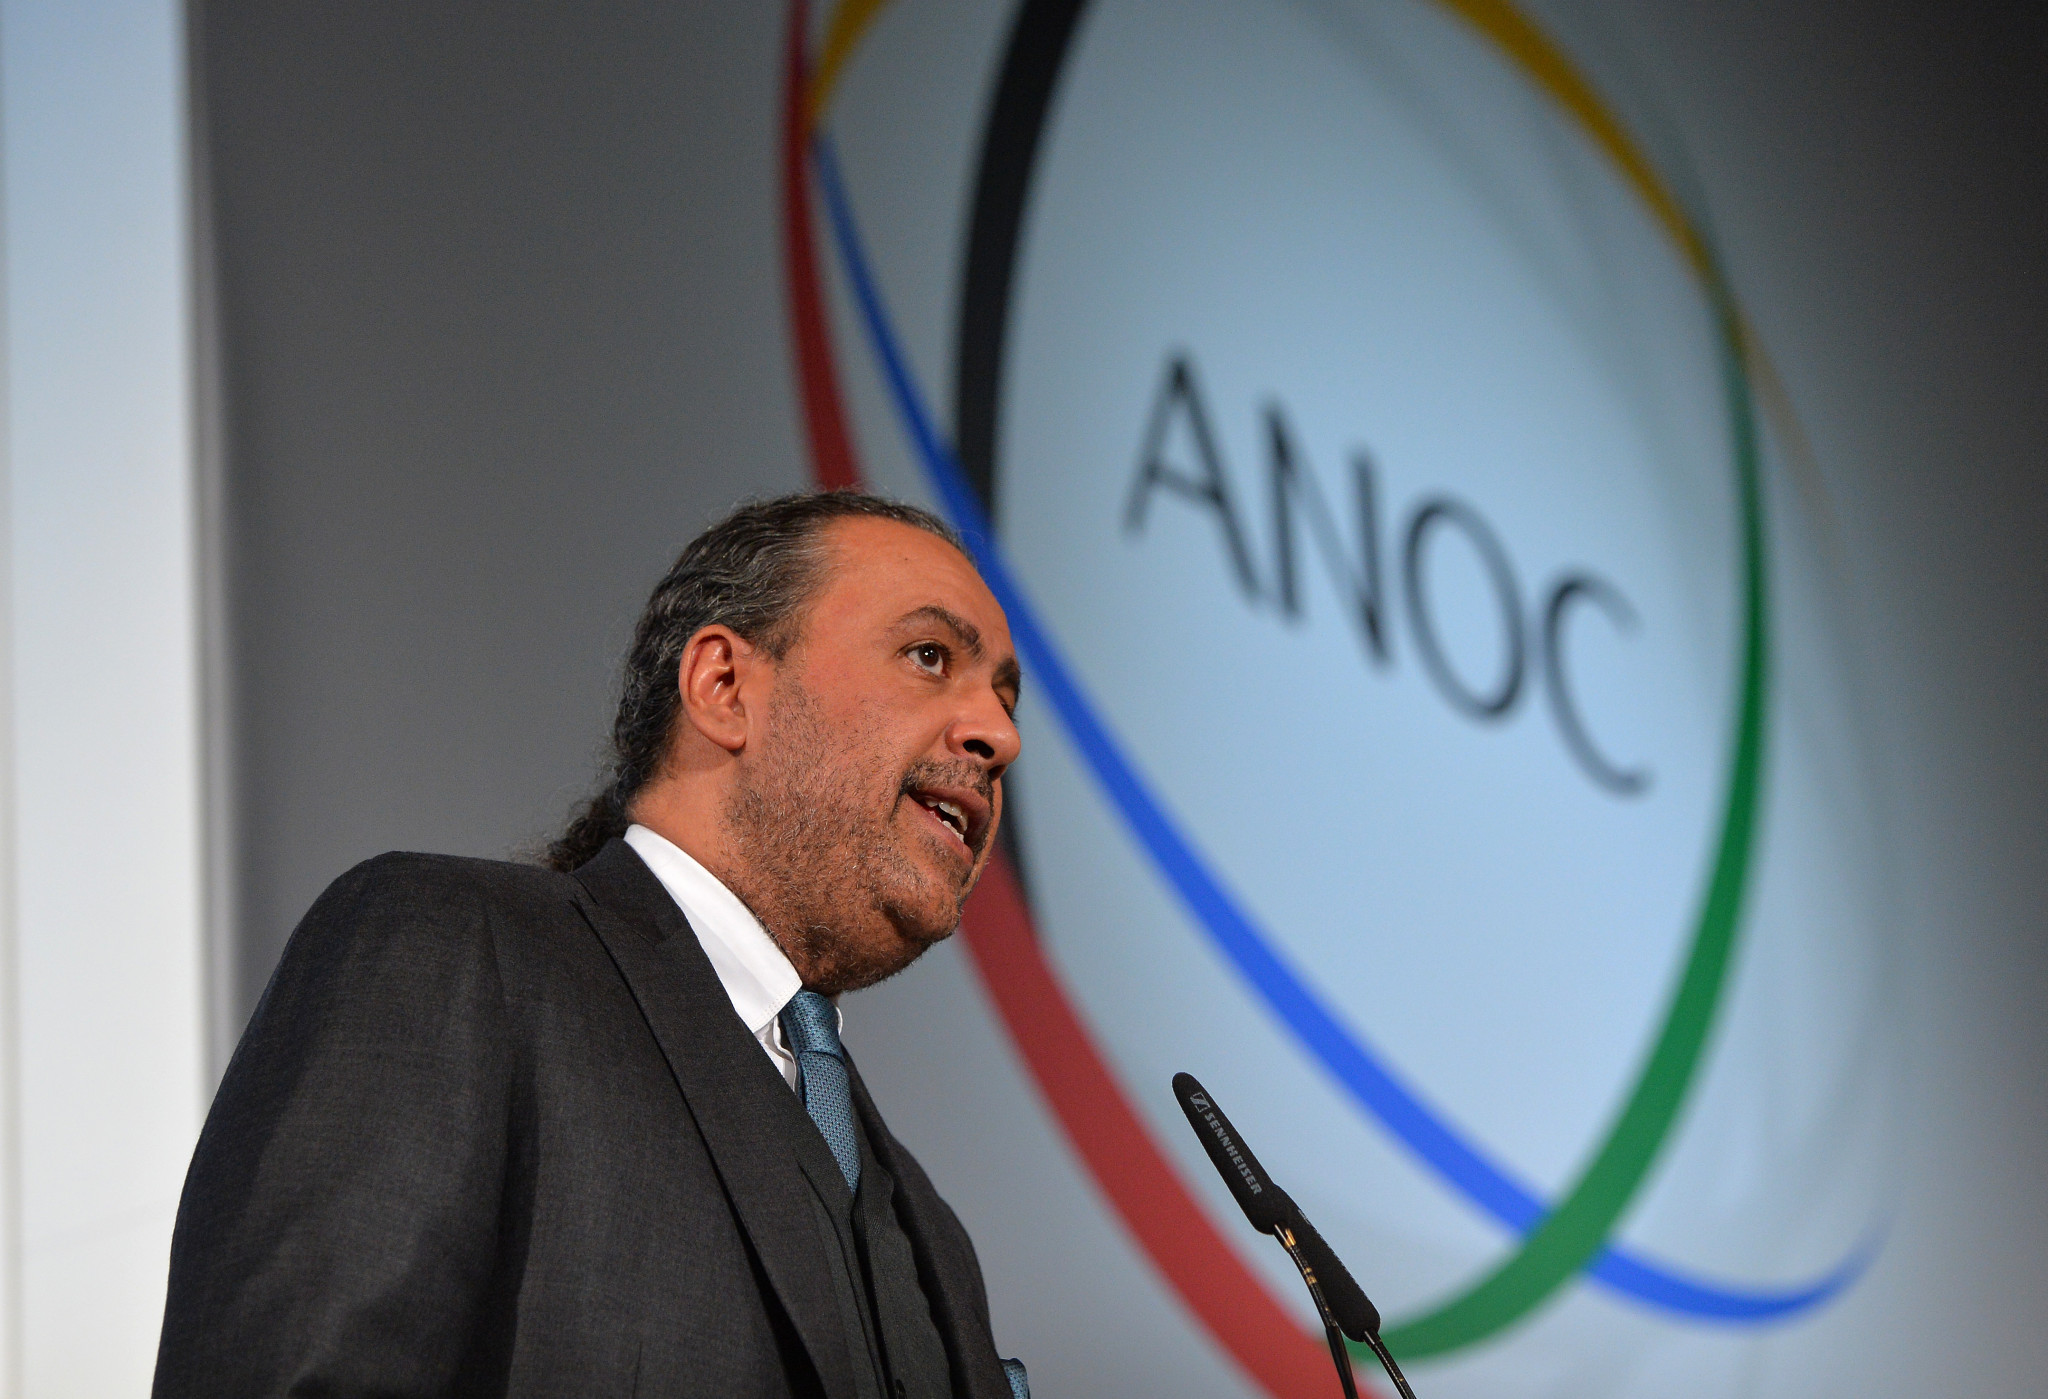 Sheikh Ahmad Al-Fahad Al-Sabah has praised both the organisers of, and the athletes at, Pyeongchang 2018 ©Getty Images